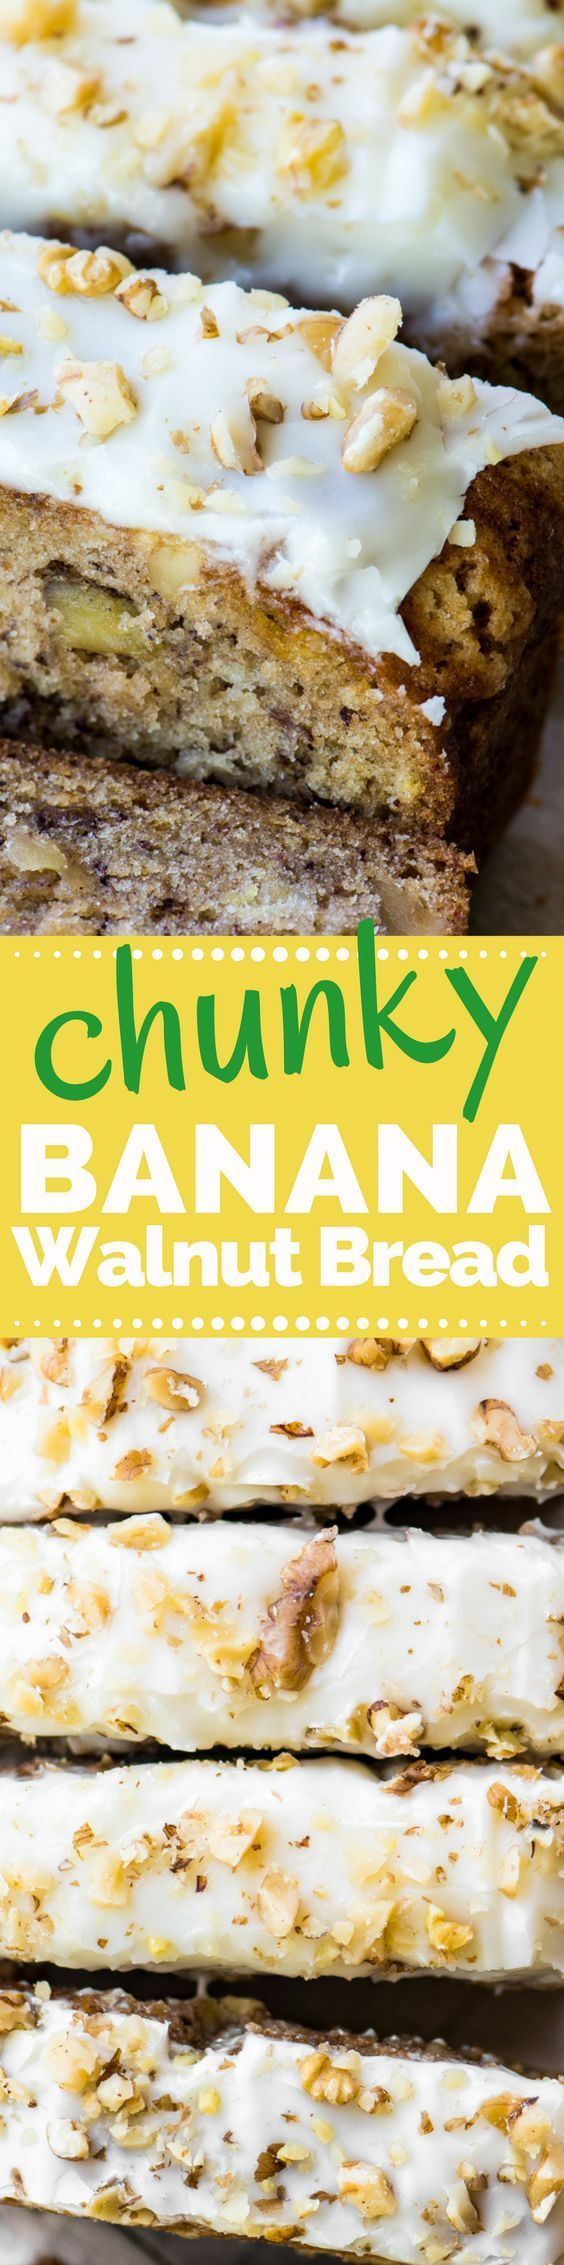 BETTER THAN STARBUCKS Banana Walnut Bread ~ skip the coffee shop and make your own divine banana walnut loaf! ~ http://theviewfromgreatisland.com